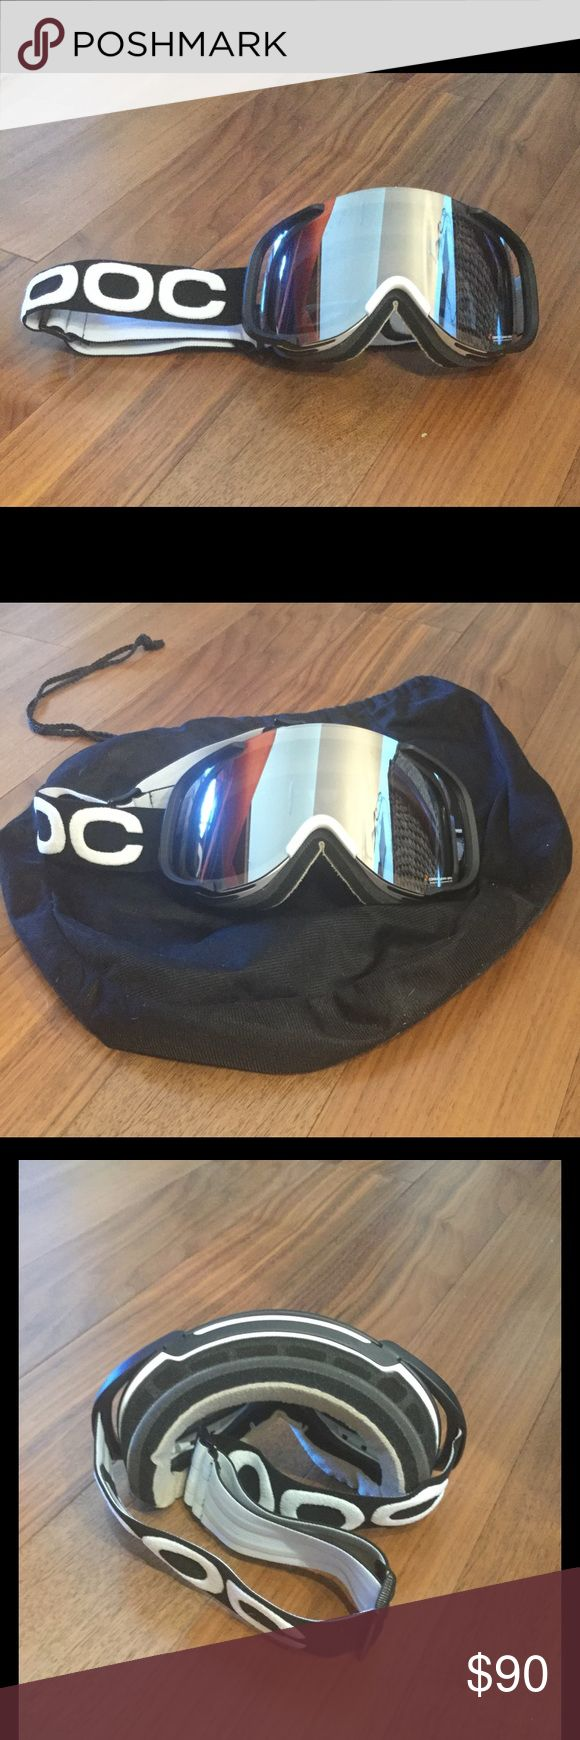 POC Cornea oversized silver mirrored ski goggles Large lens silver mirrored oversized ski goggles. Great condition, only worn one (light) season. Soft frame with helmet compatible outriggers. Triple layer face foam for a soft & comfortable fit & feel.  Anti fog treated inner lens, anti fog coating, anti scratch coating. Adjustable silicone backed logo strap maintains secure fit over helmet. white silky protective bag included. POC Accessories Sunglasses